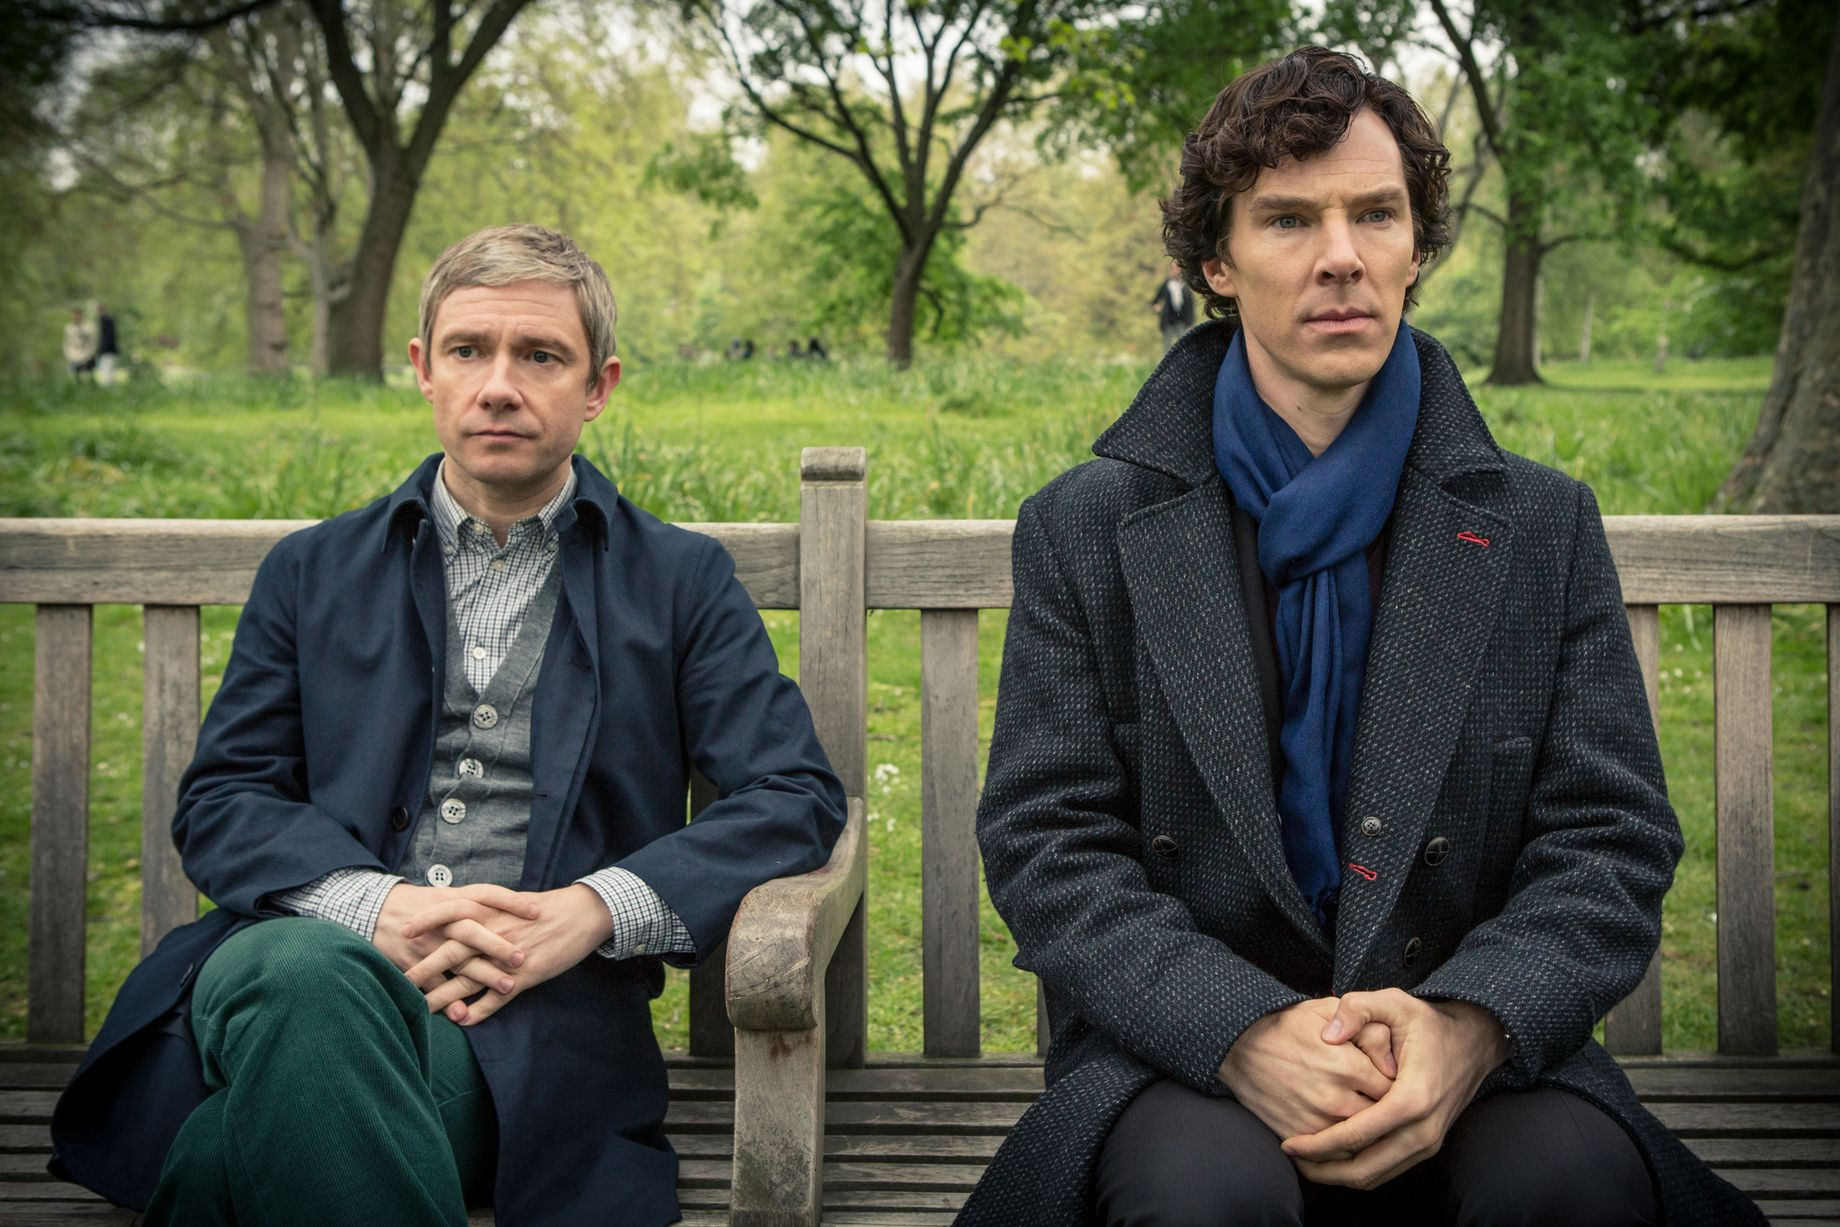 Watson and Sherlock's friendship looks strained as they sit on a bench.